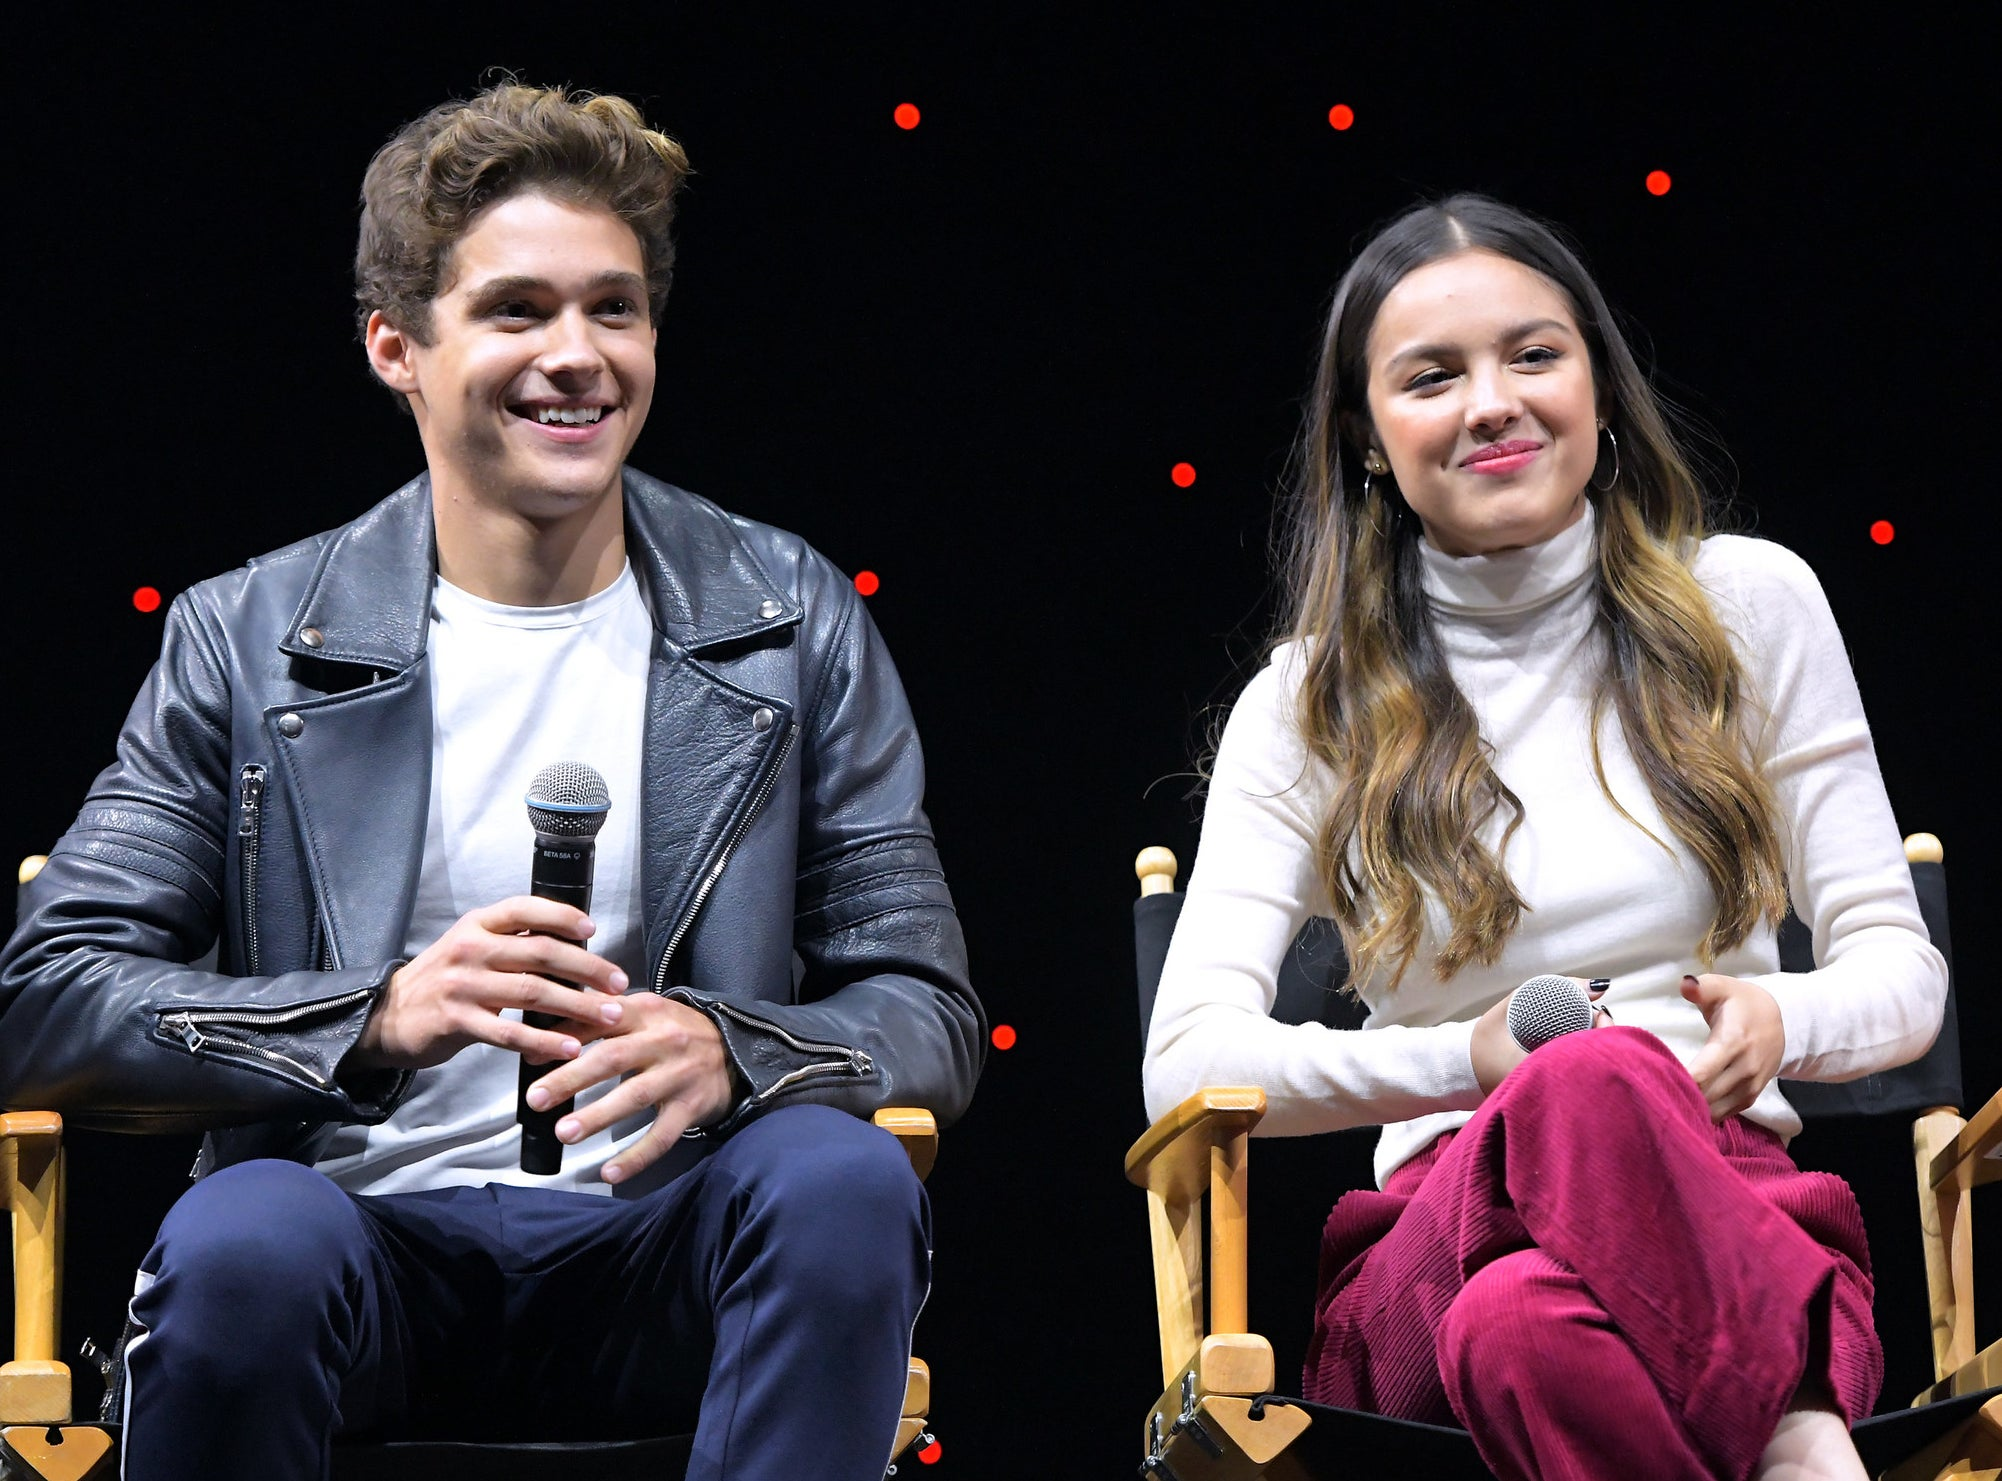 Joshua and Olivia smile while speaking onstage